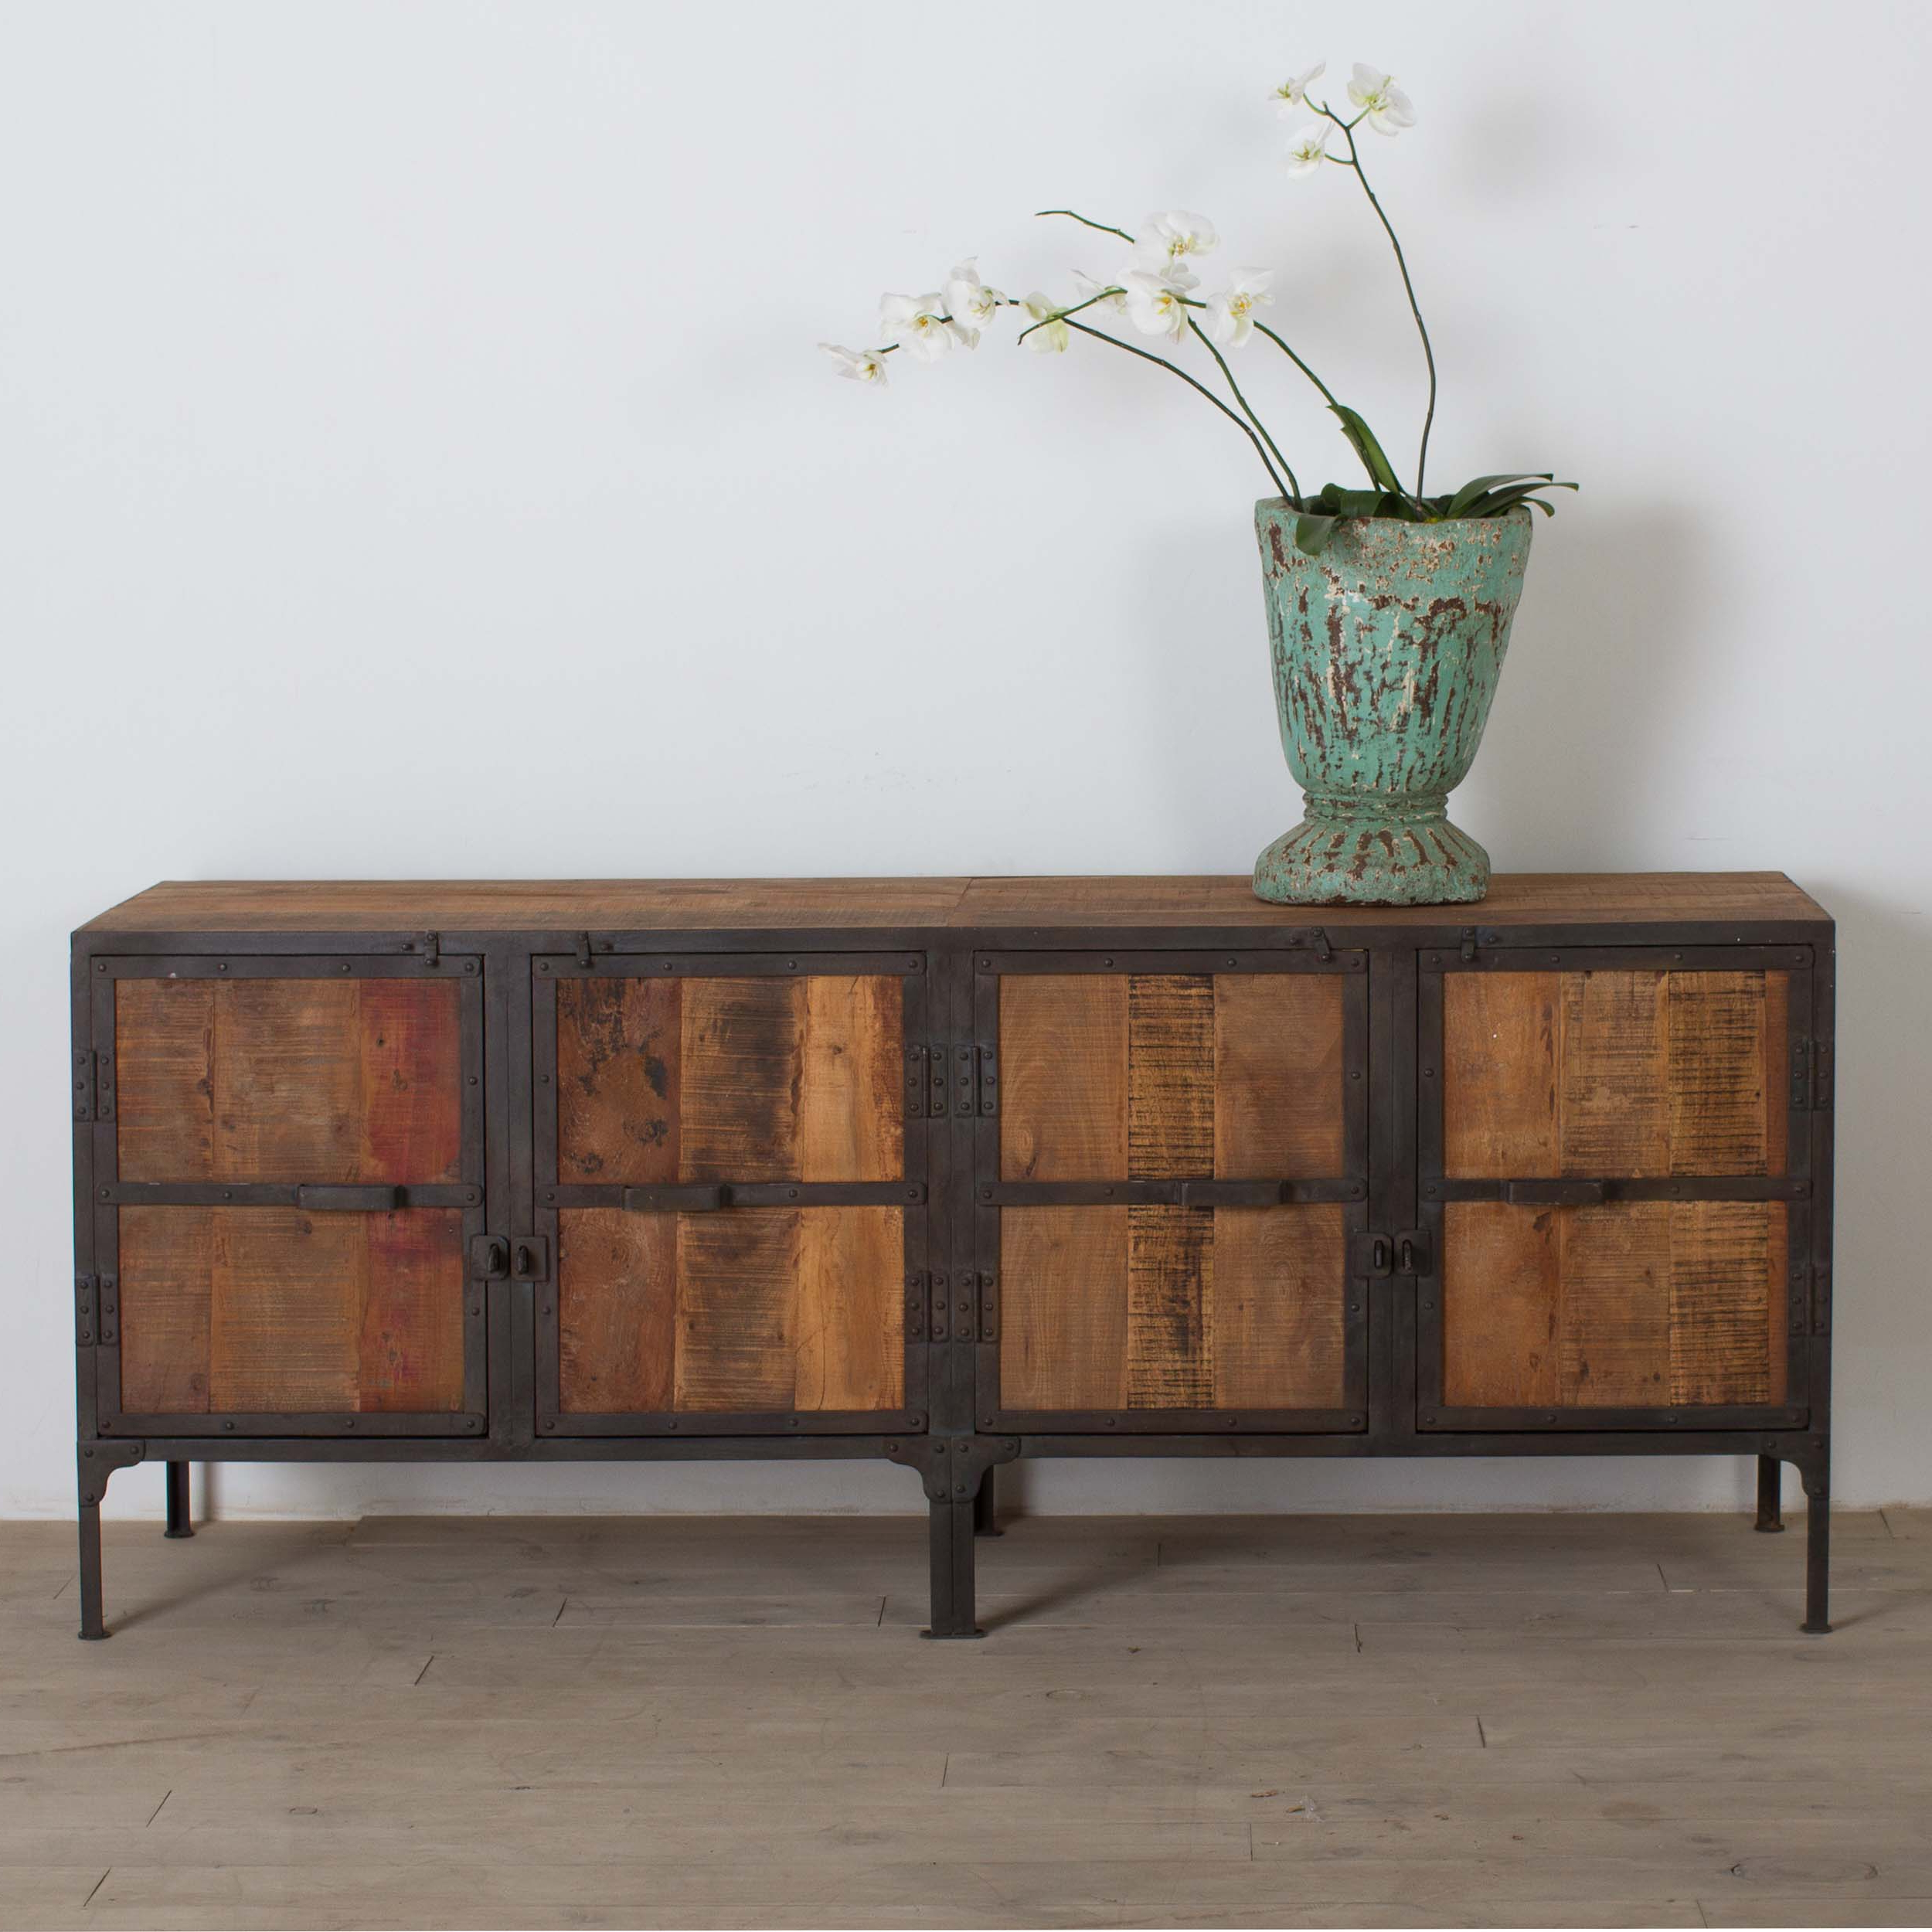 Black Oak Wood And Wrought Iron Sideboards Within Most Up To Date Shop Handmade Cg Sparks Handmade Hyderabad Reclaimed Wood And Metal (Gallery 13 of 20)